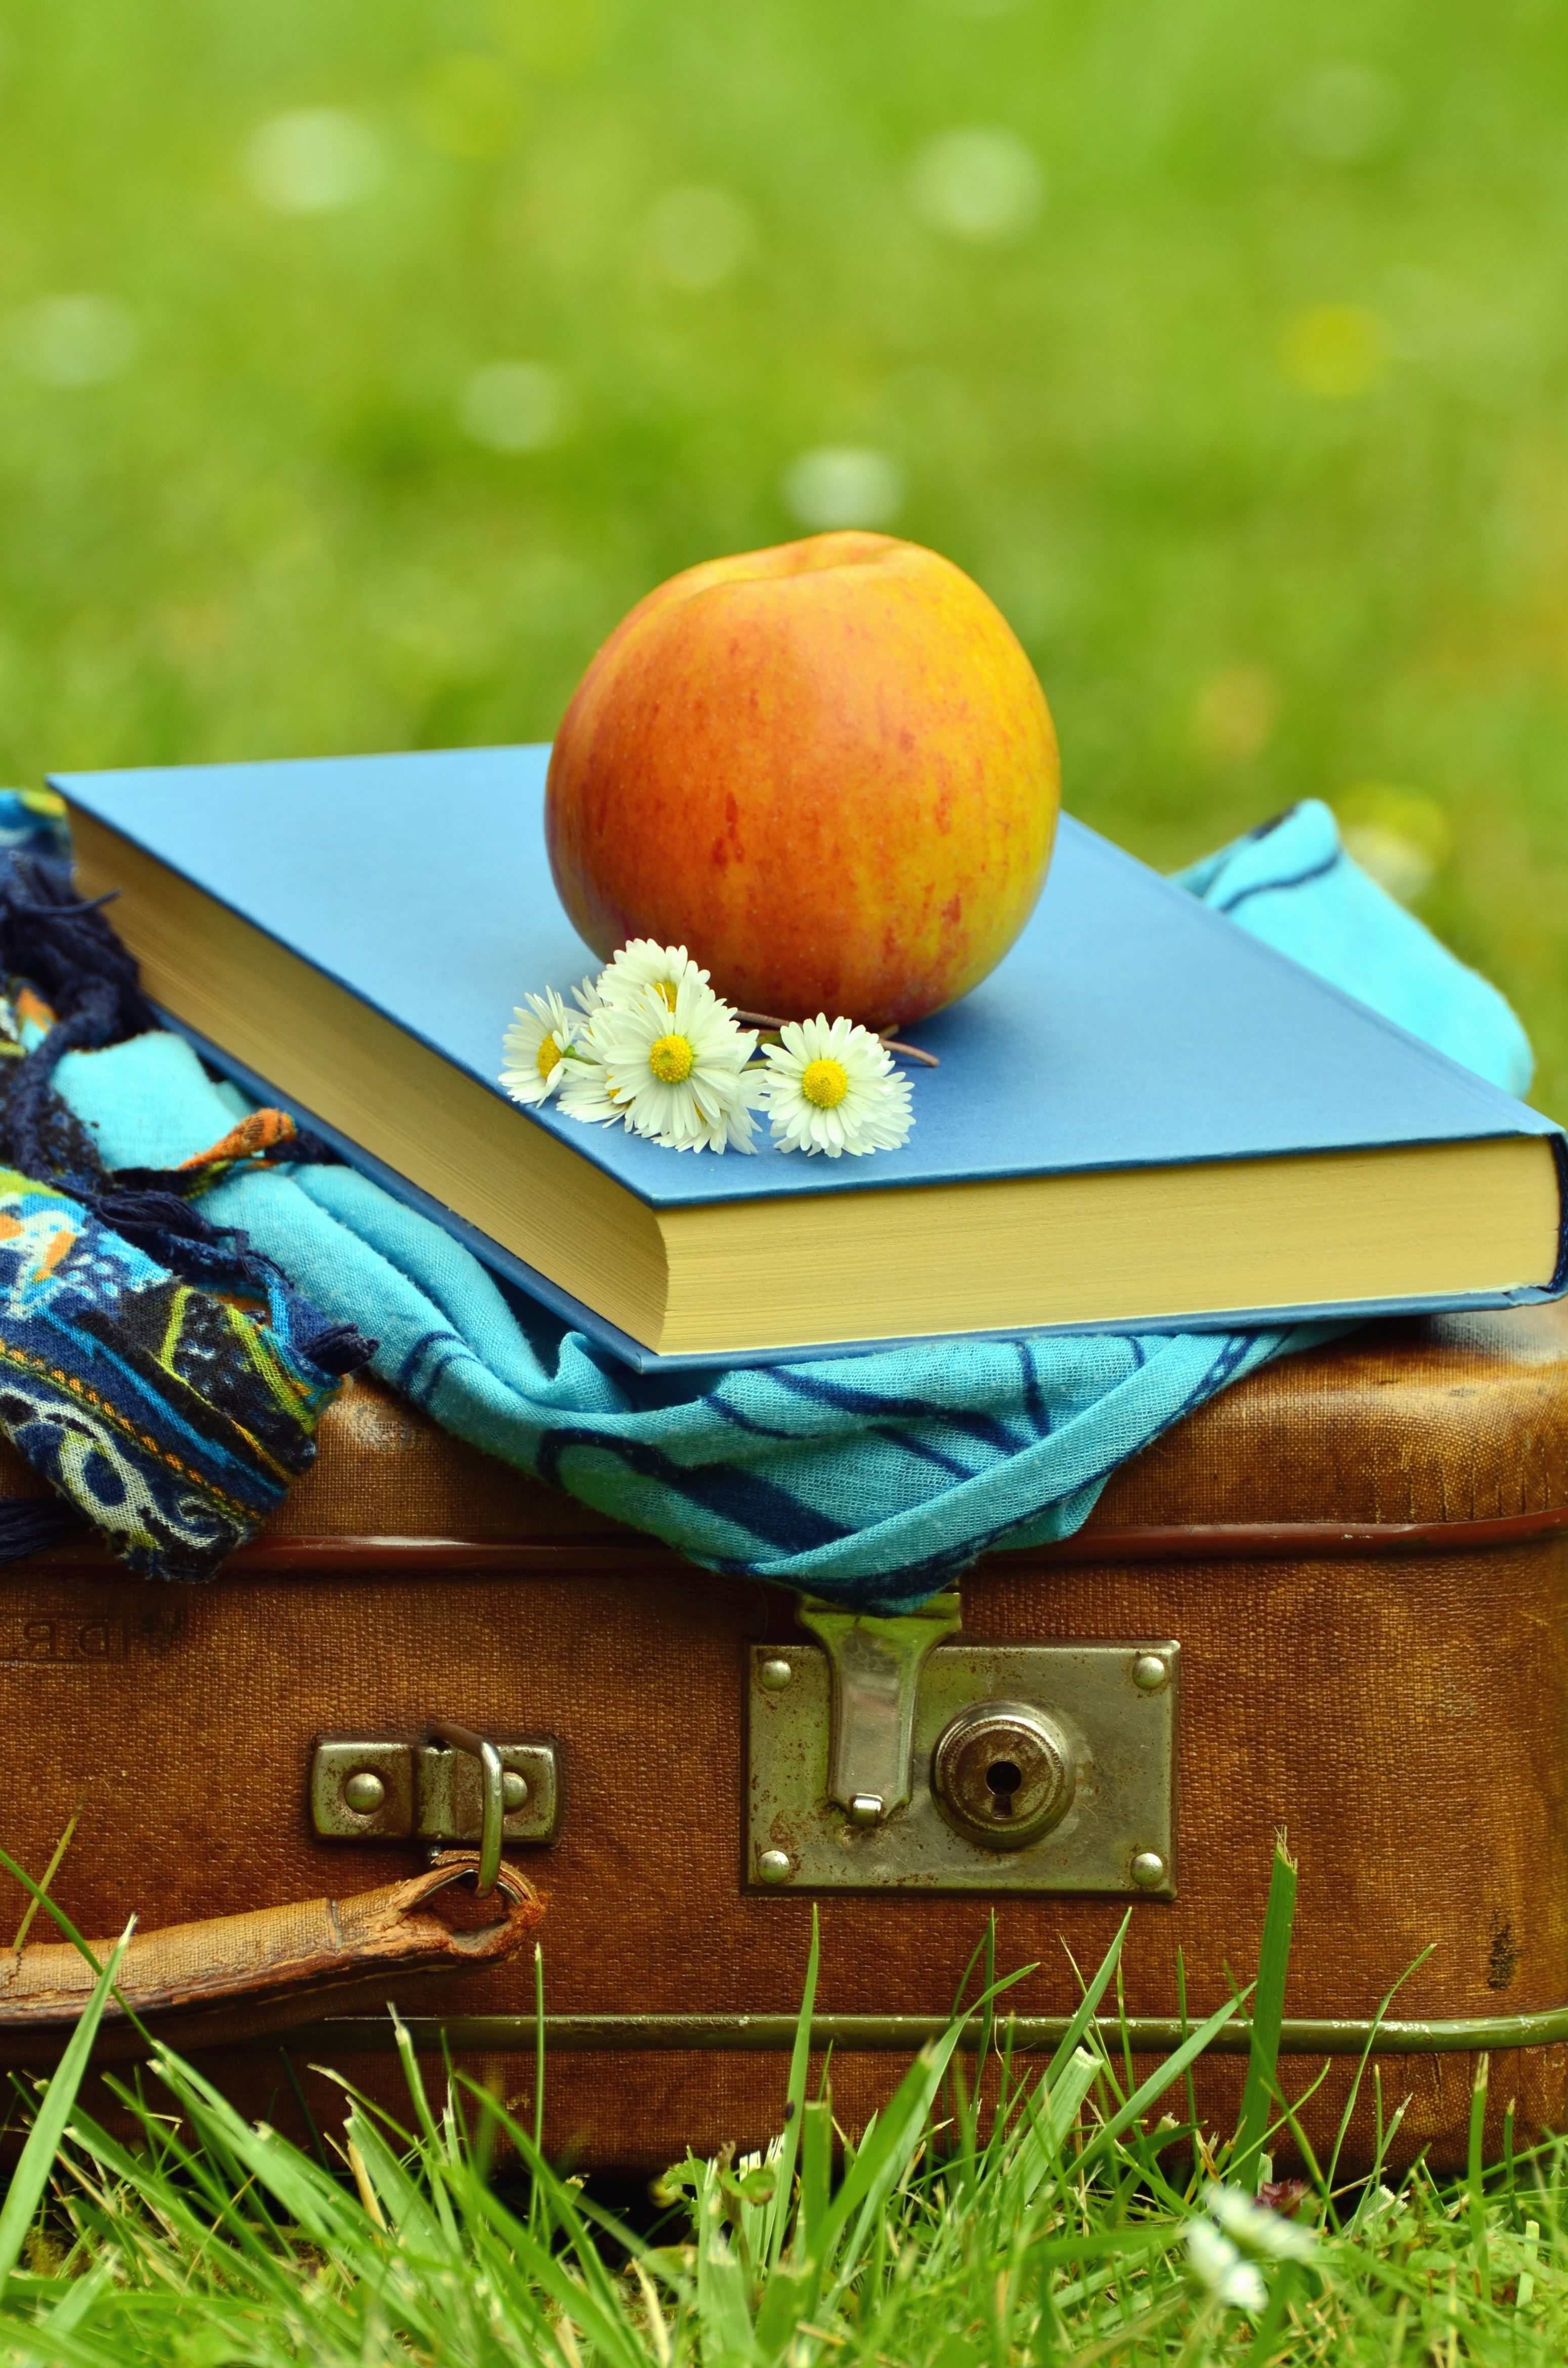 Free Picture Suitcase Flower Book Apple Fruit Daisy